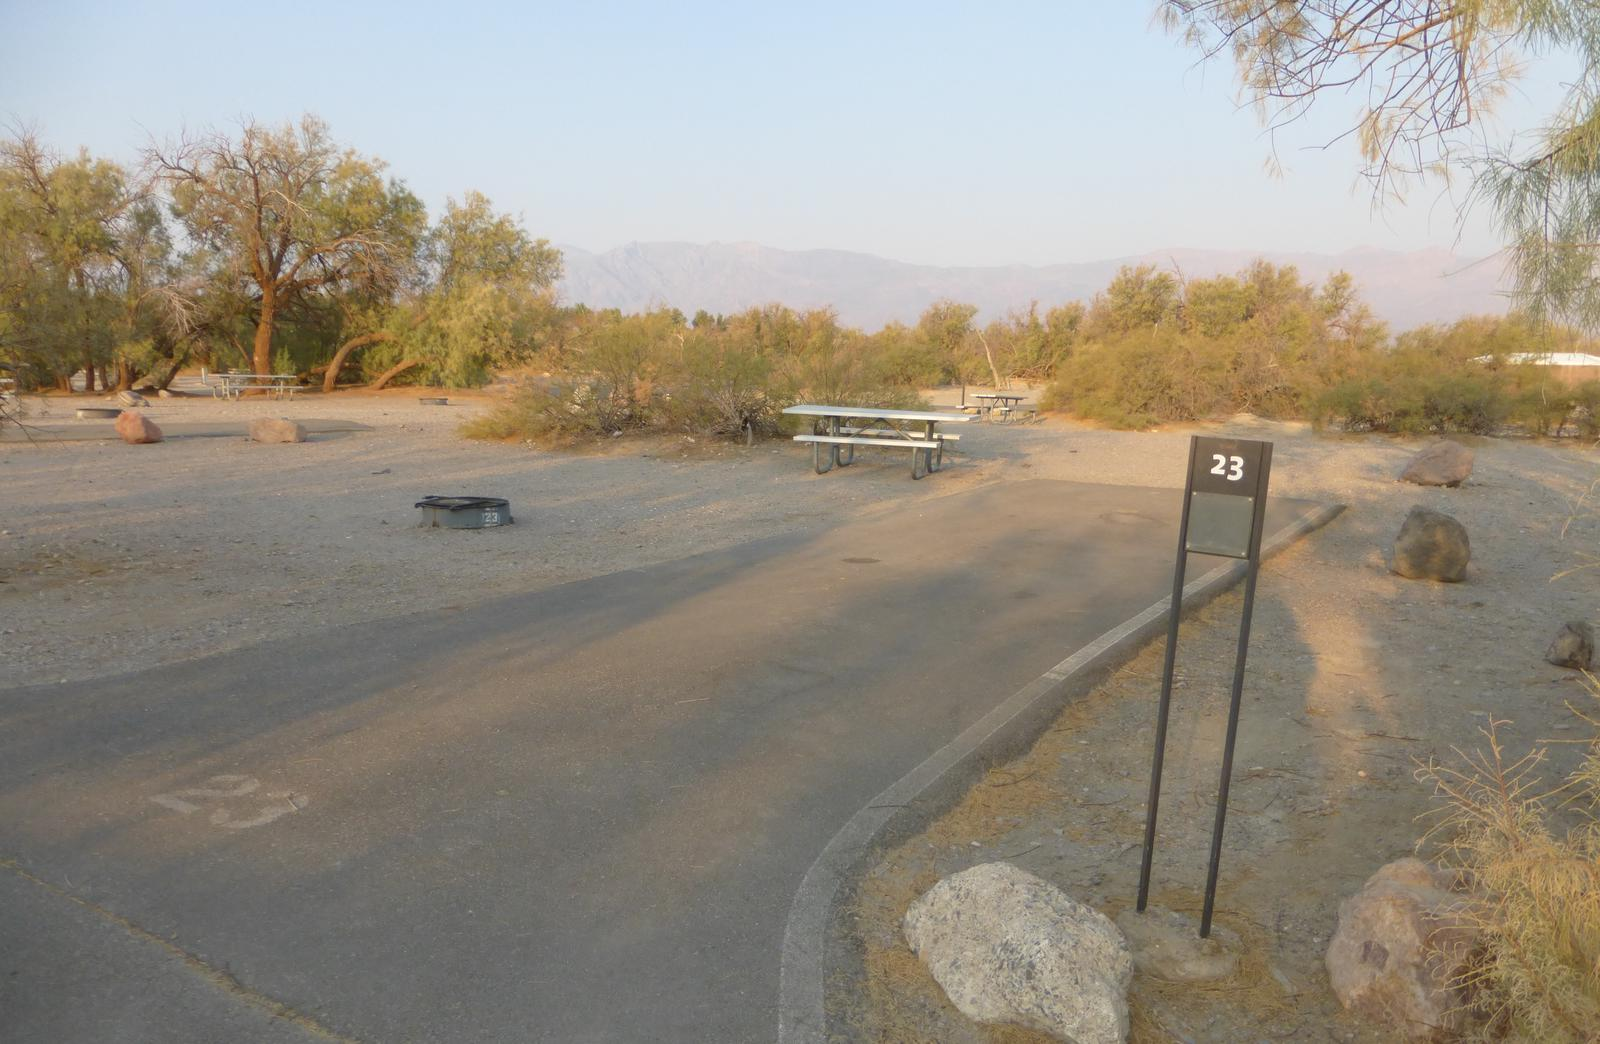 Furnace Creek Campground standard nonelectric site #23 with picnic table and fire ring.